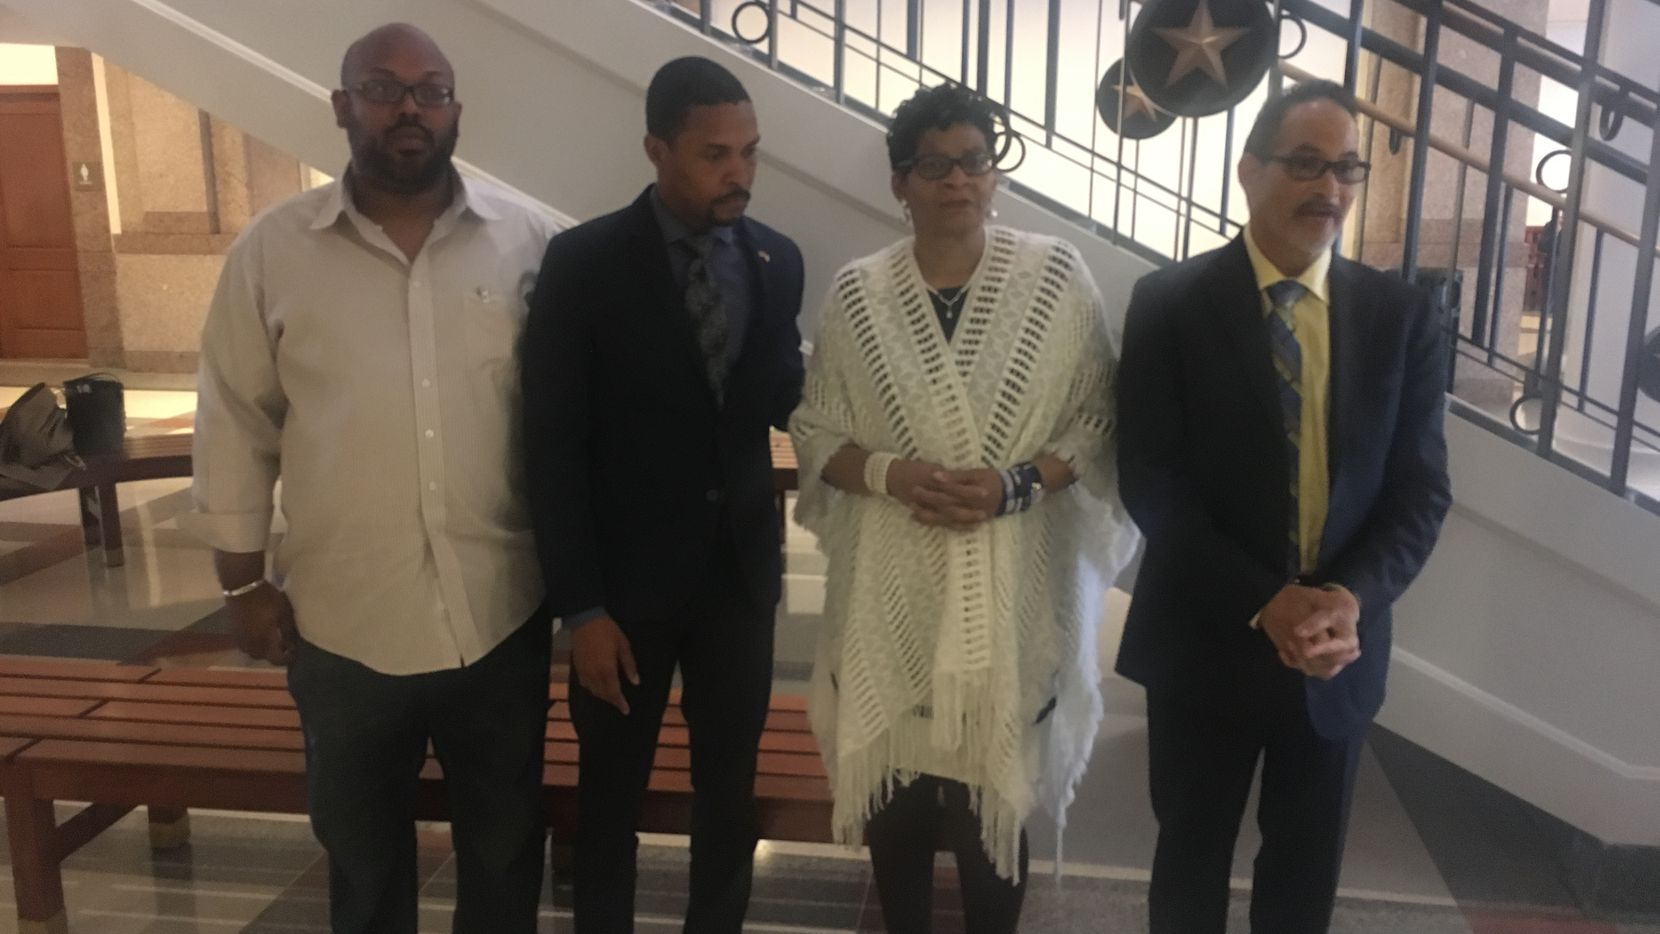 Rep. Garnet Coleman met with Sandra Bland's mother, Geneva Reed-Veal, and the men who accompanied her to the Capitol on Tuesday.